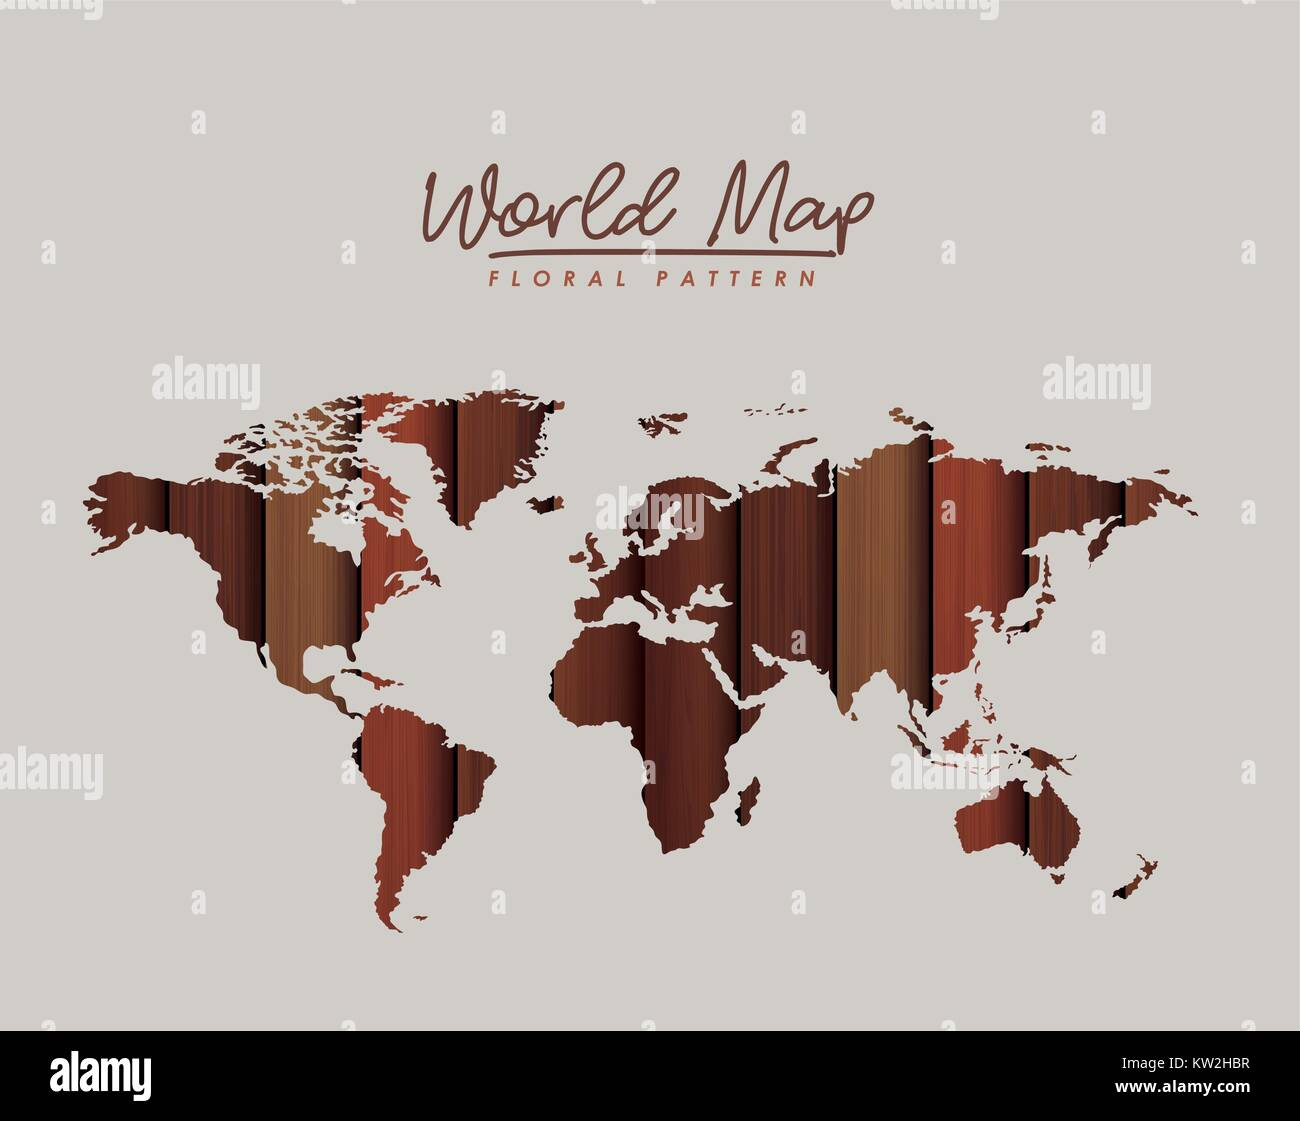 World map floral pattern with brown wood texture lines on light gray world map floral pattern with brown wood texture lines on light gray background gumiabroncs Images